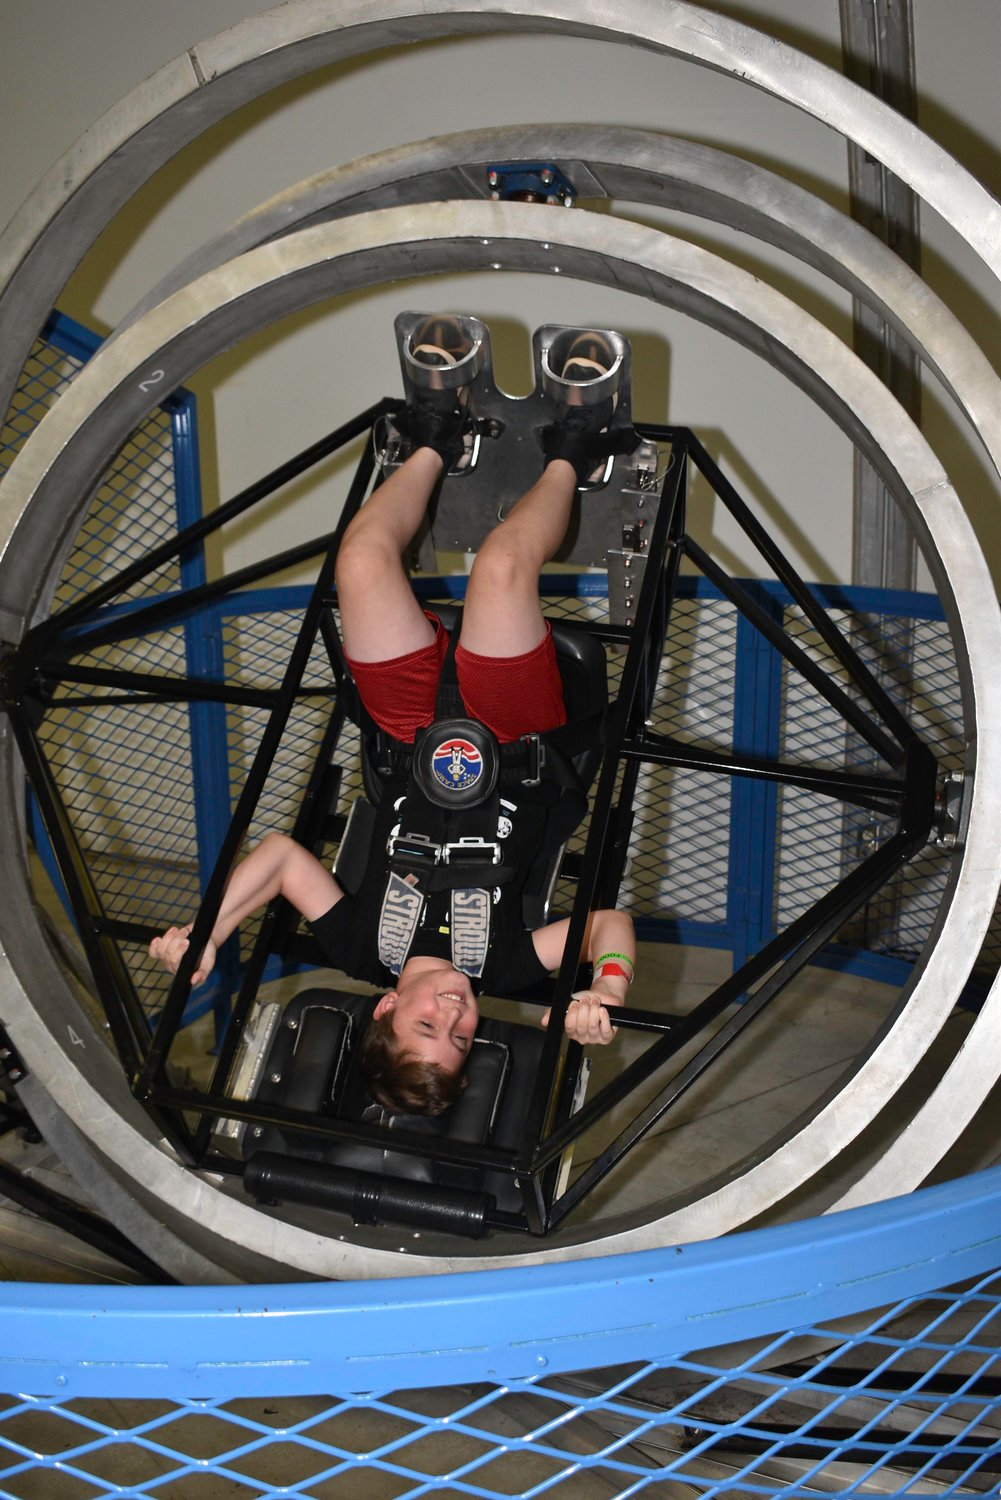 Cartersville brothers live like astronauts at Space Camp